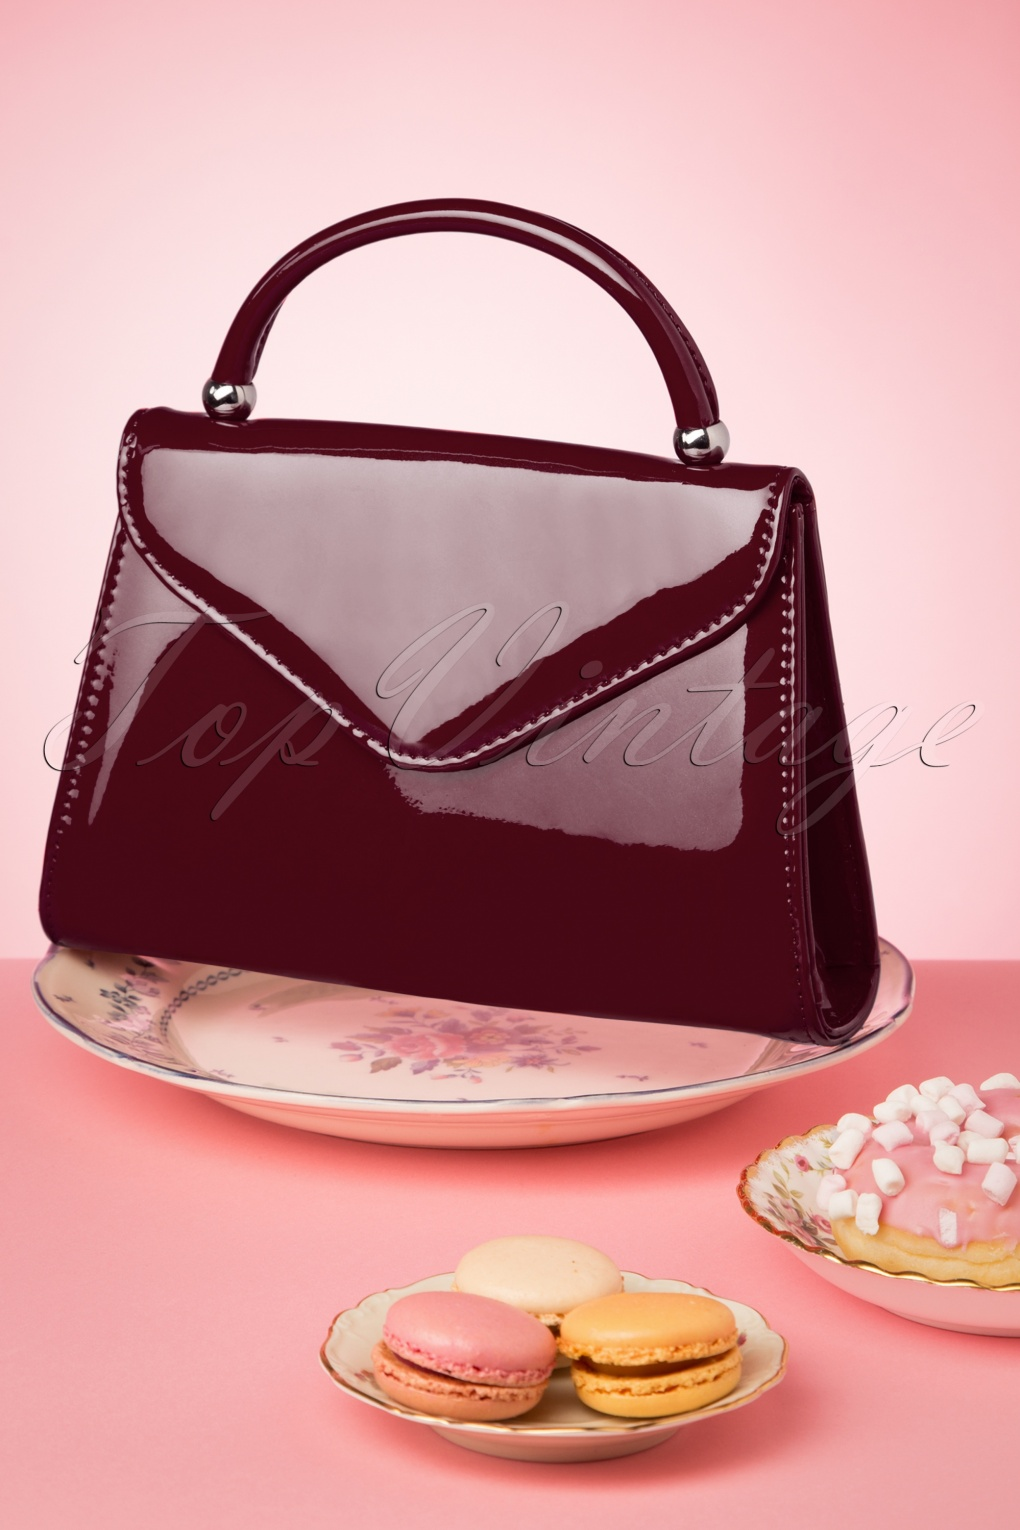 60s Fancy Dress and Quality Clothing 1960s UK 60s Lillian Lacquer Flap Bag in Dark Burgundy £24.95 AT vintagedancer.com